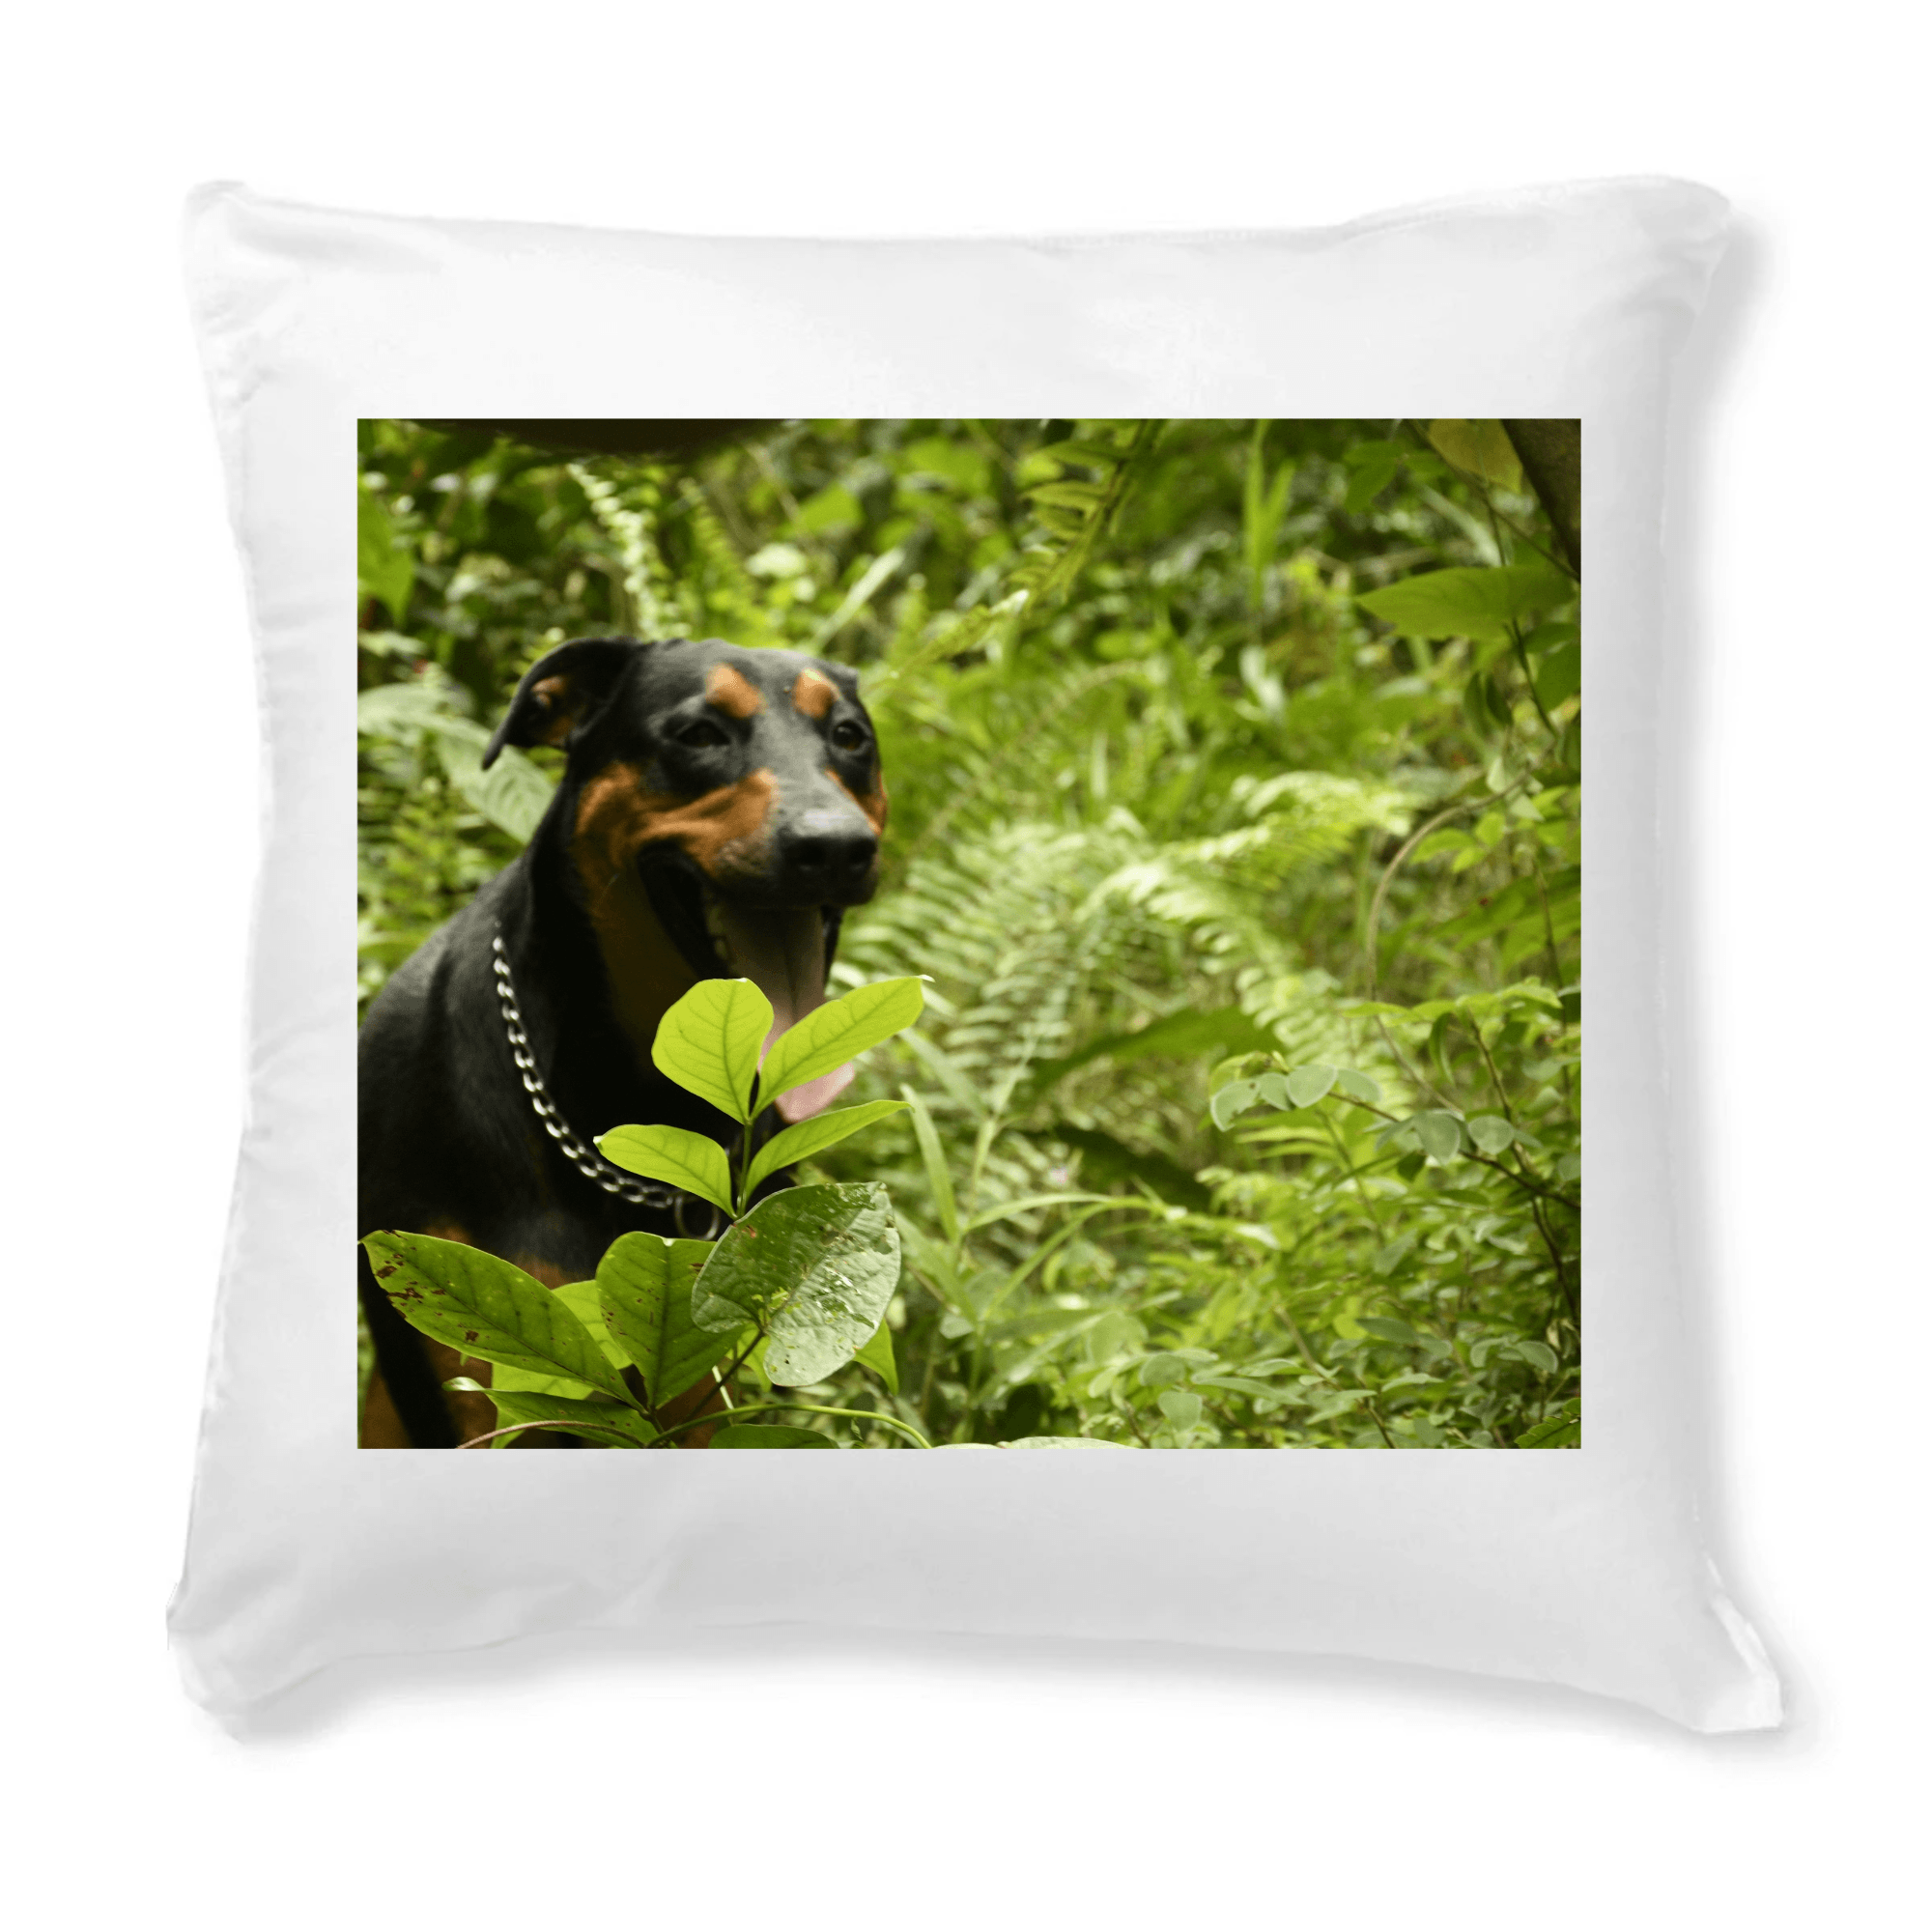 CUSHION + COVER - PILLOWS - The explorer dog Firo in El Yunque rainforest Puerto Rico - Yunque Store